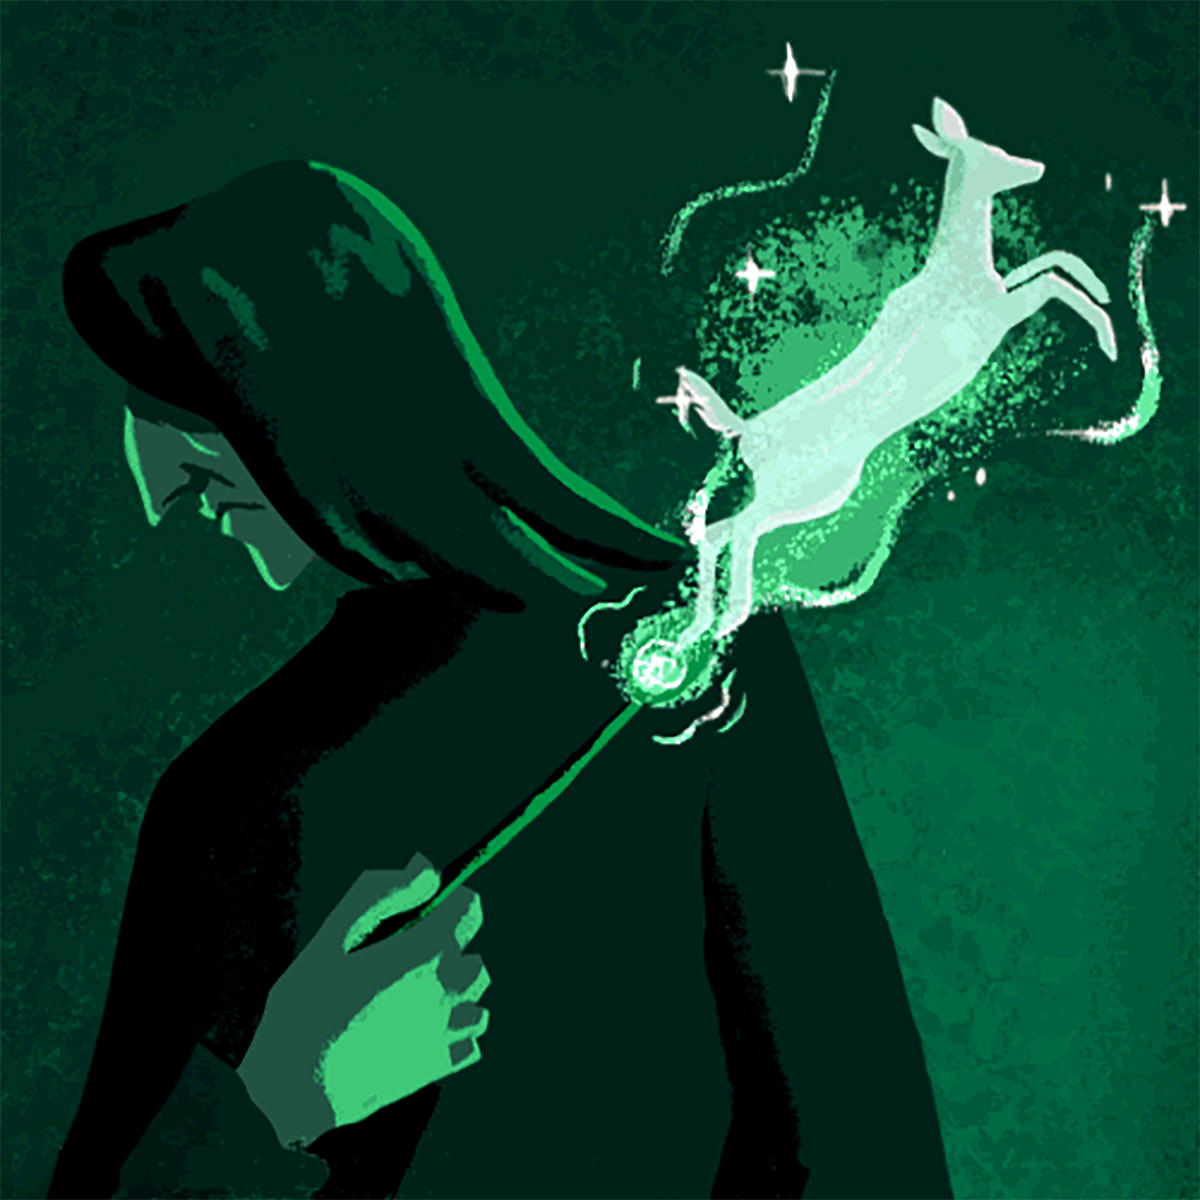 Illustration of Severus Snape casting his doe Patronus from Read the Magic